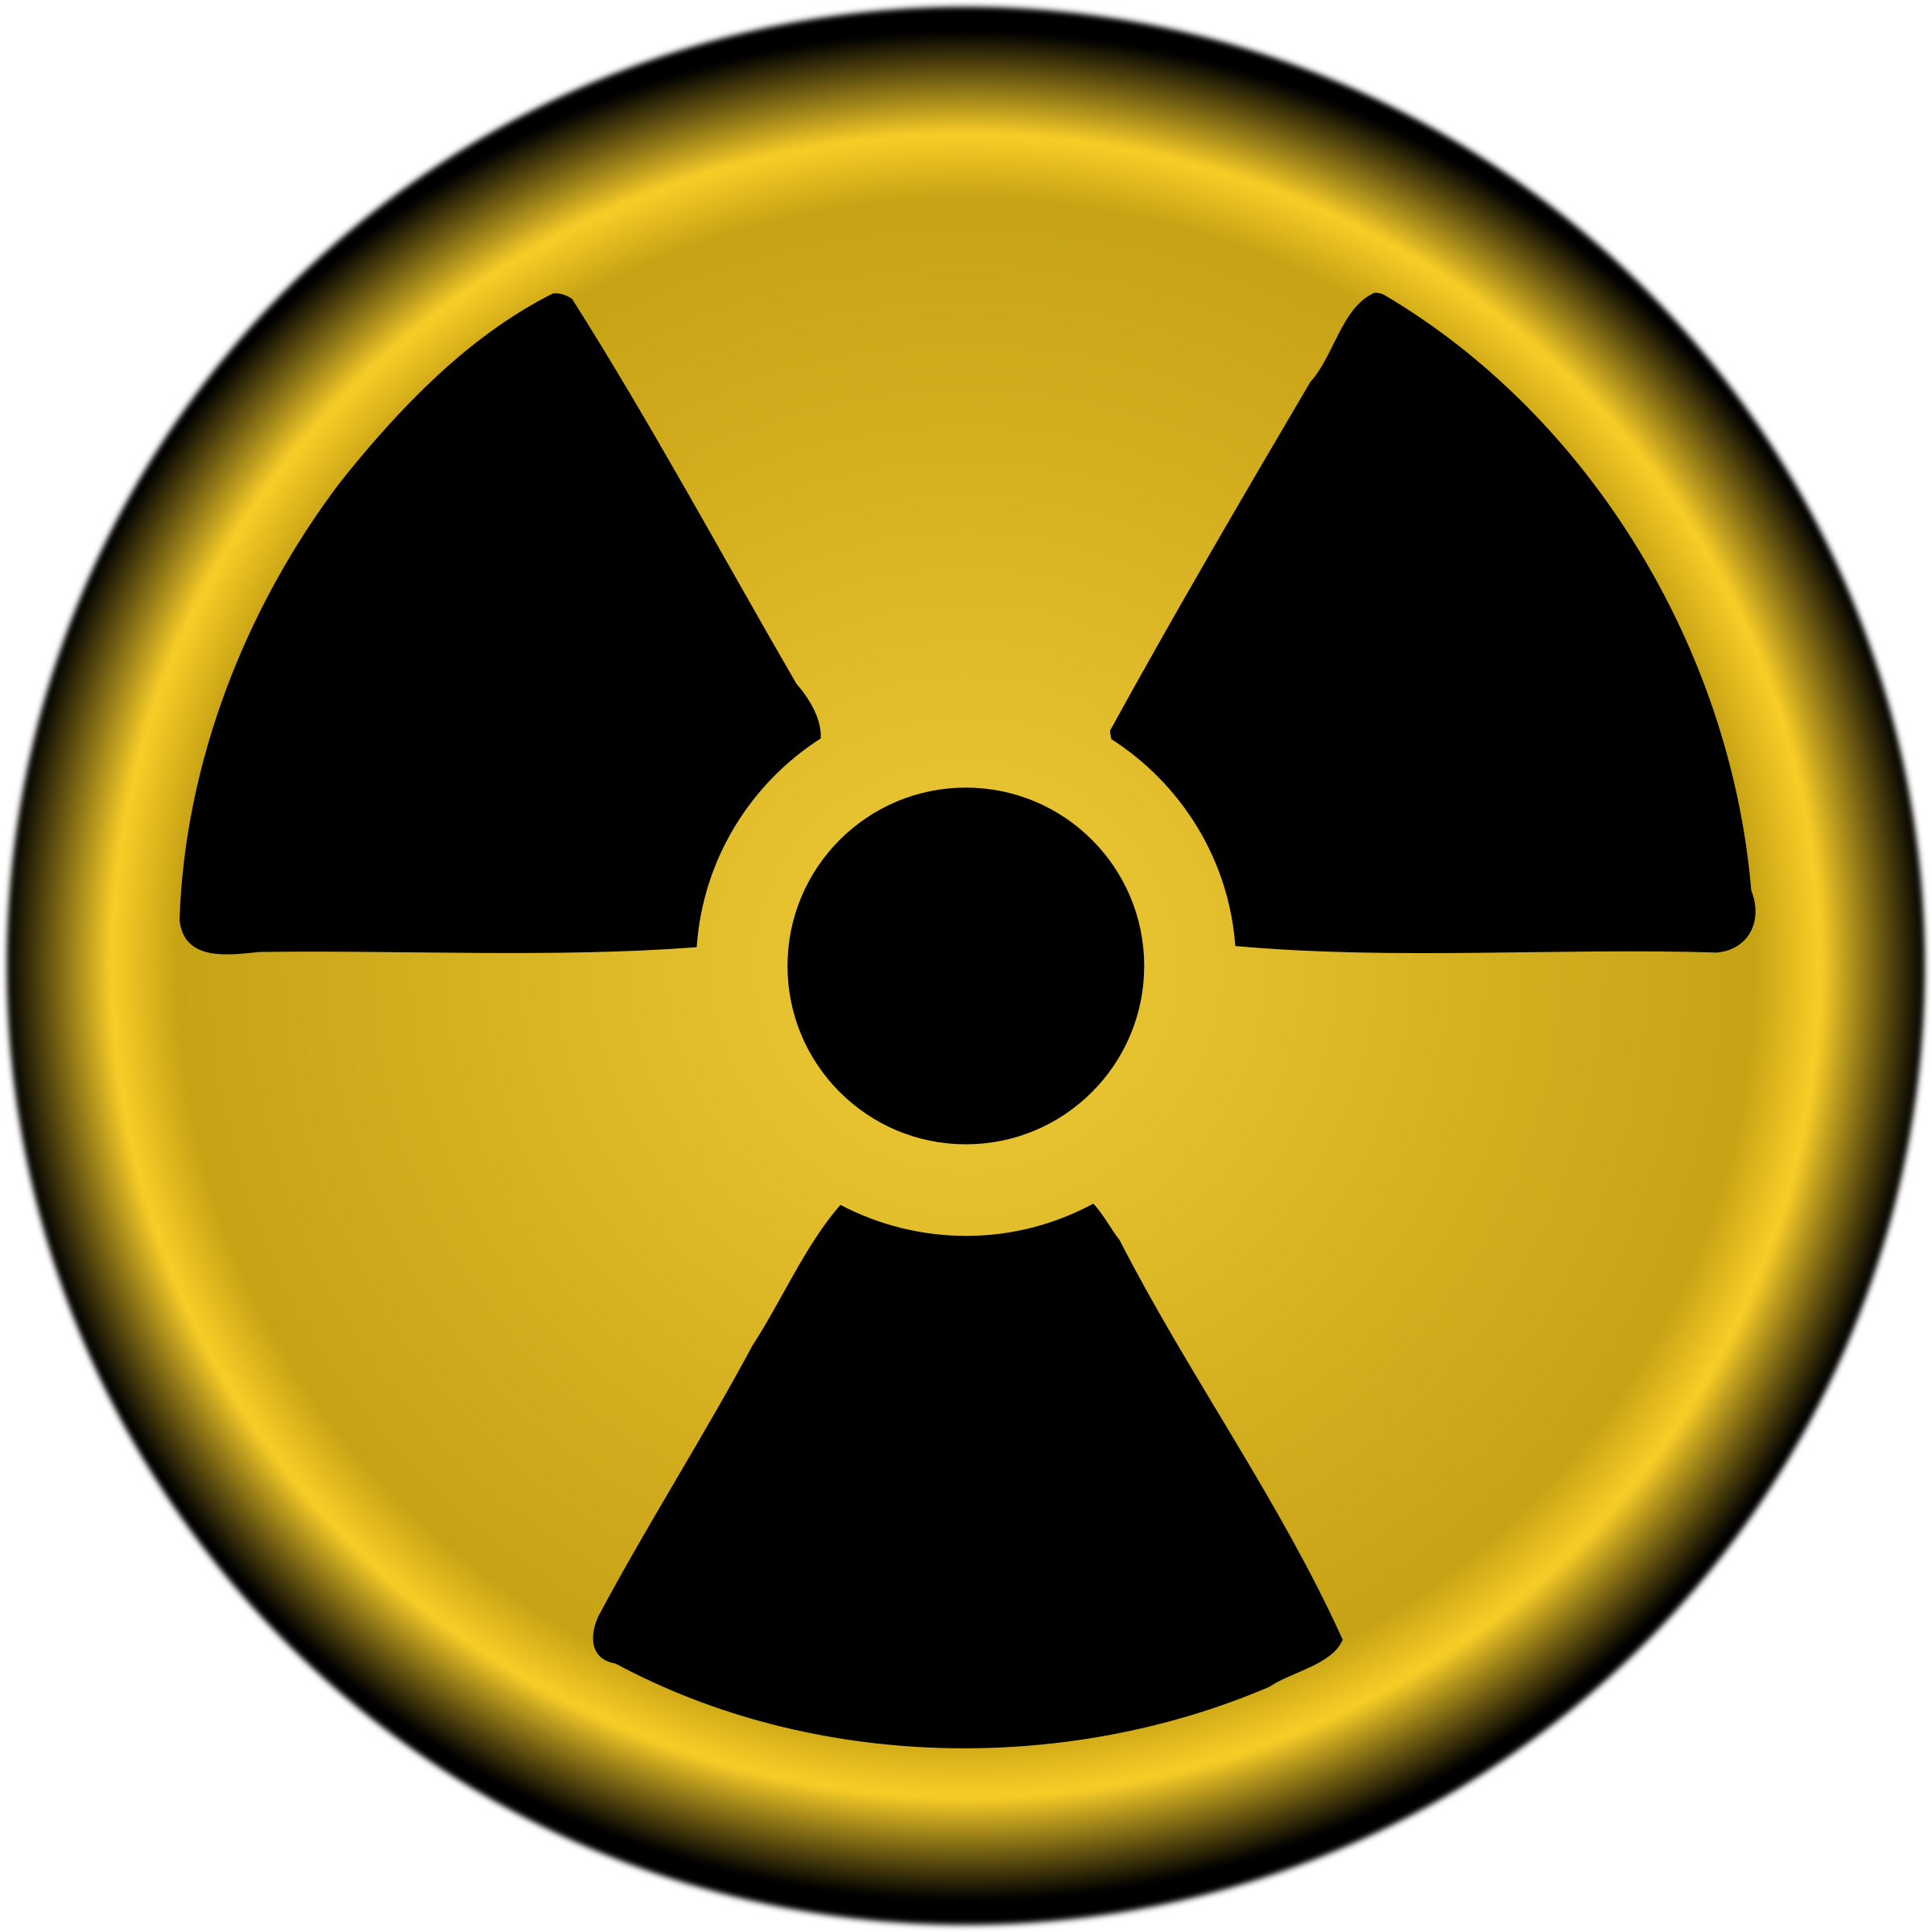 Radiation symbol nuclear by Keistutis